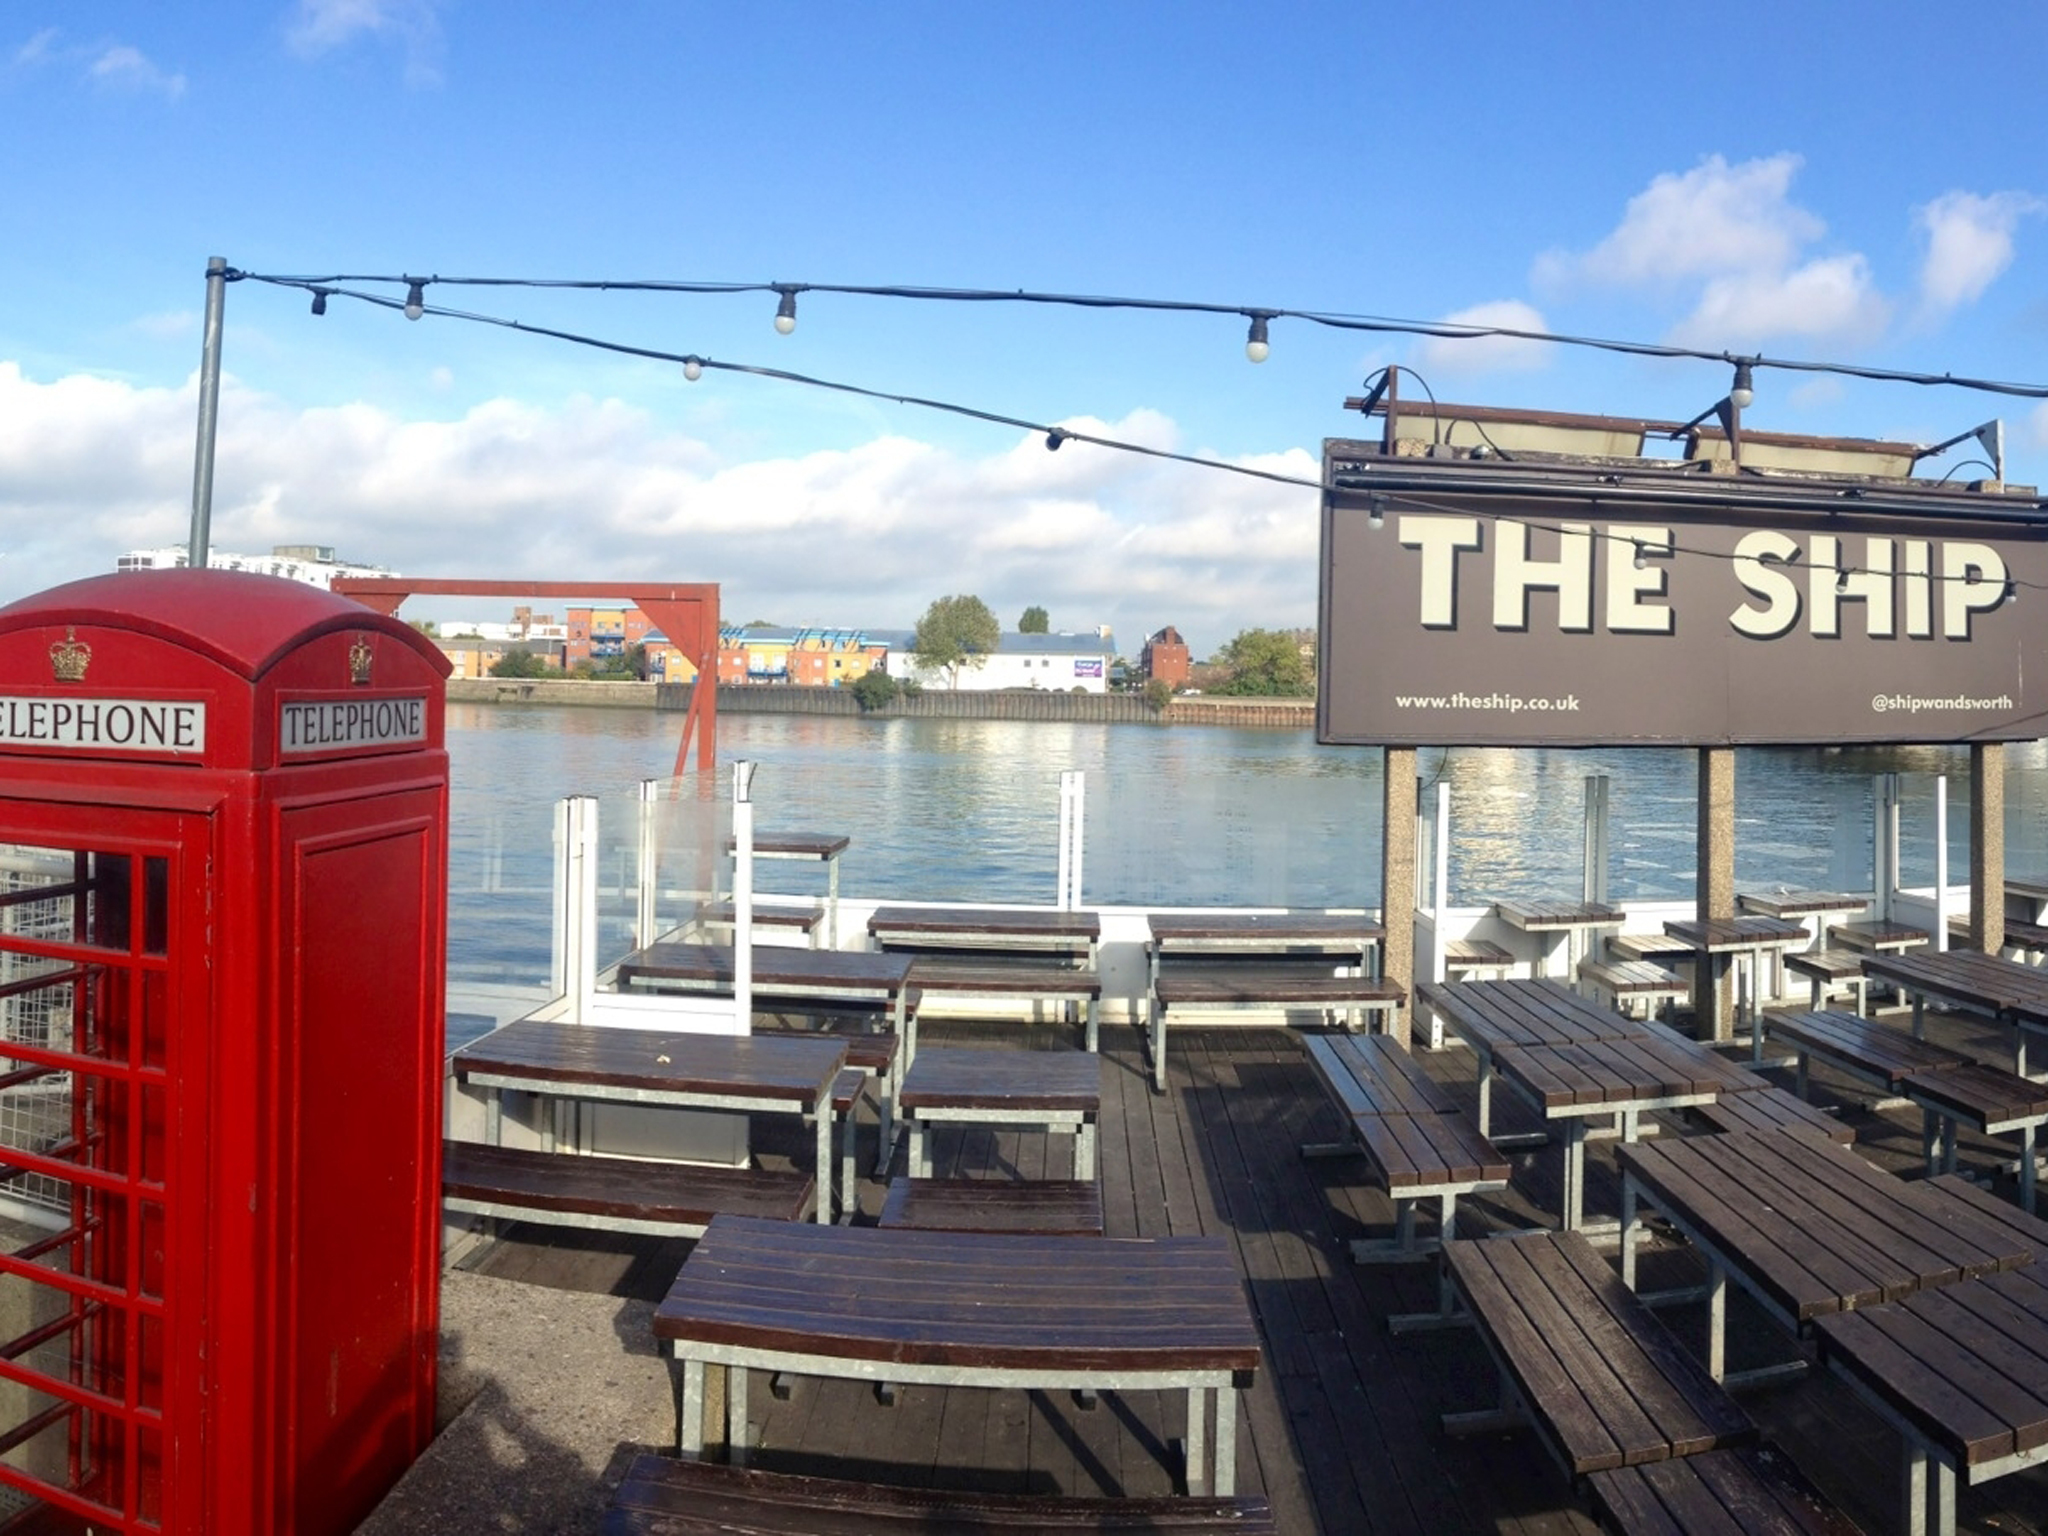 The ship wandsworth